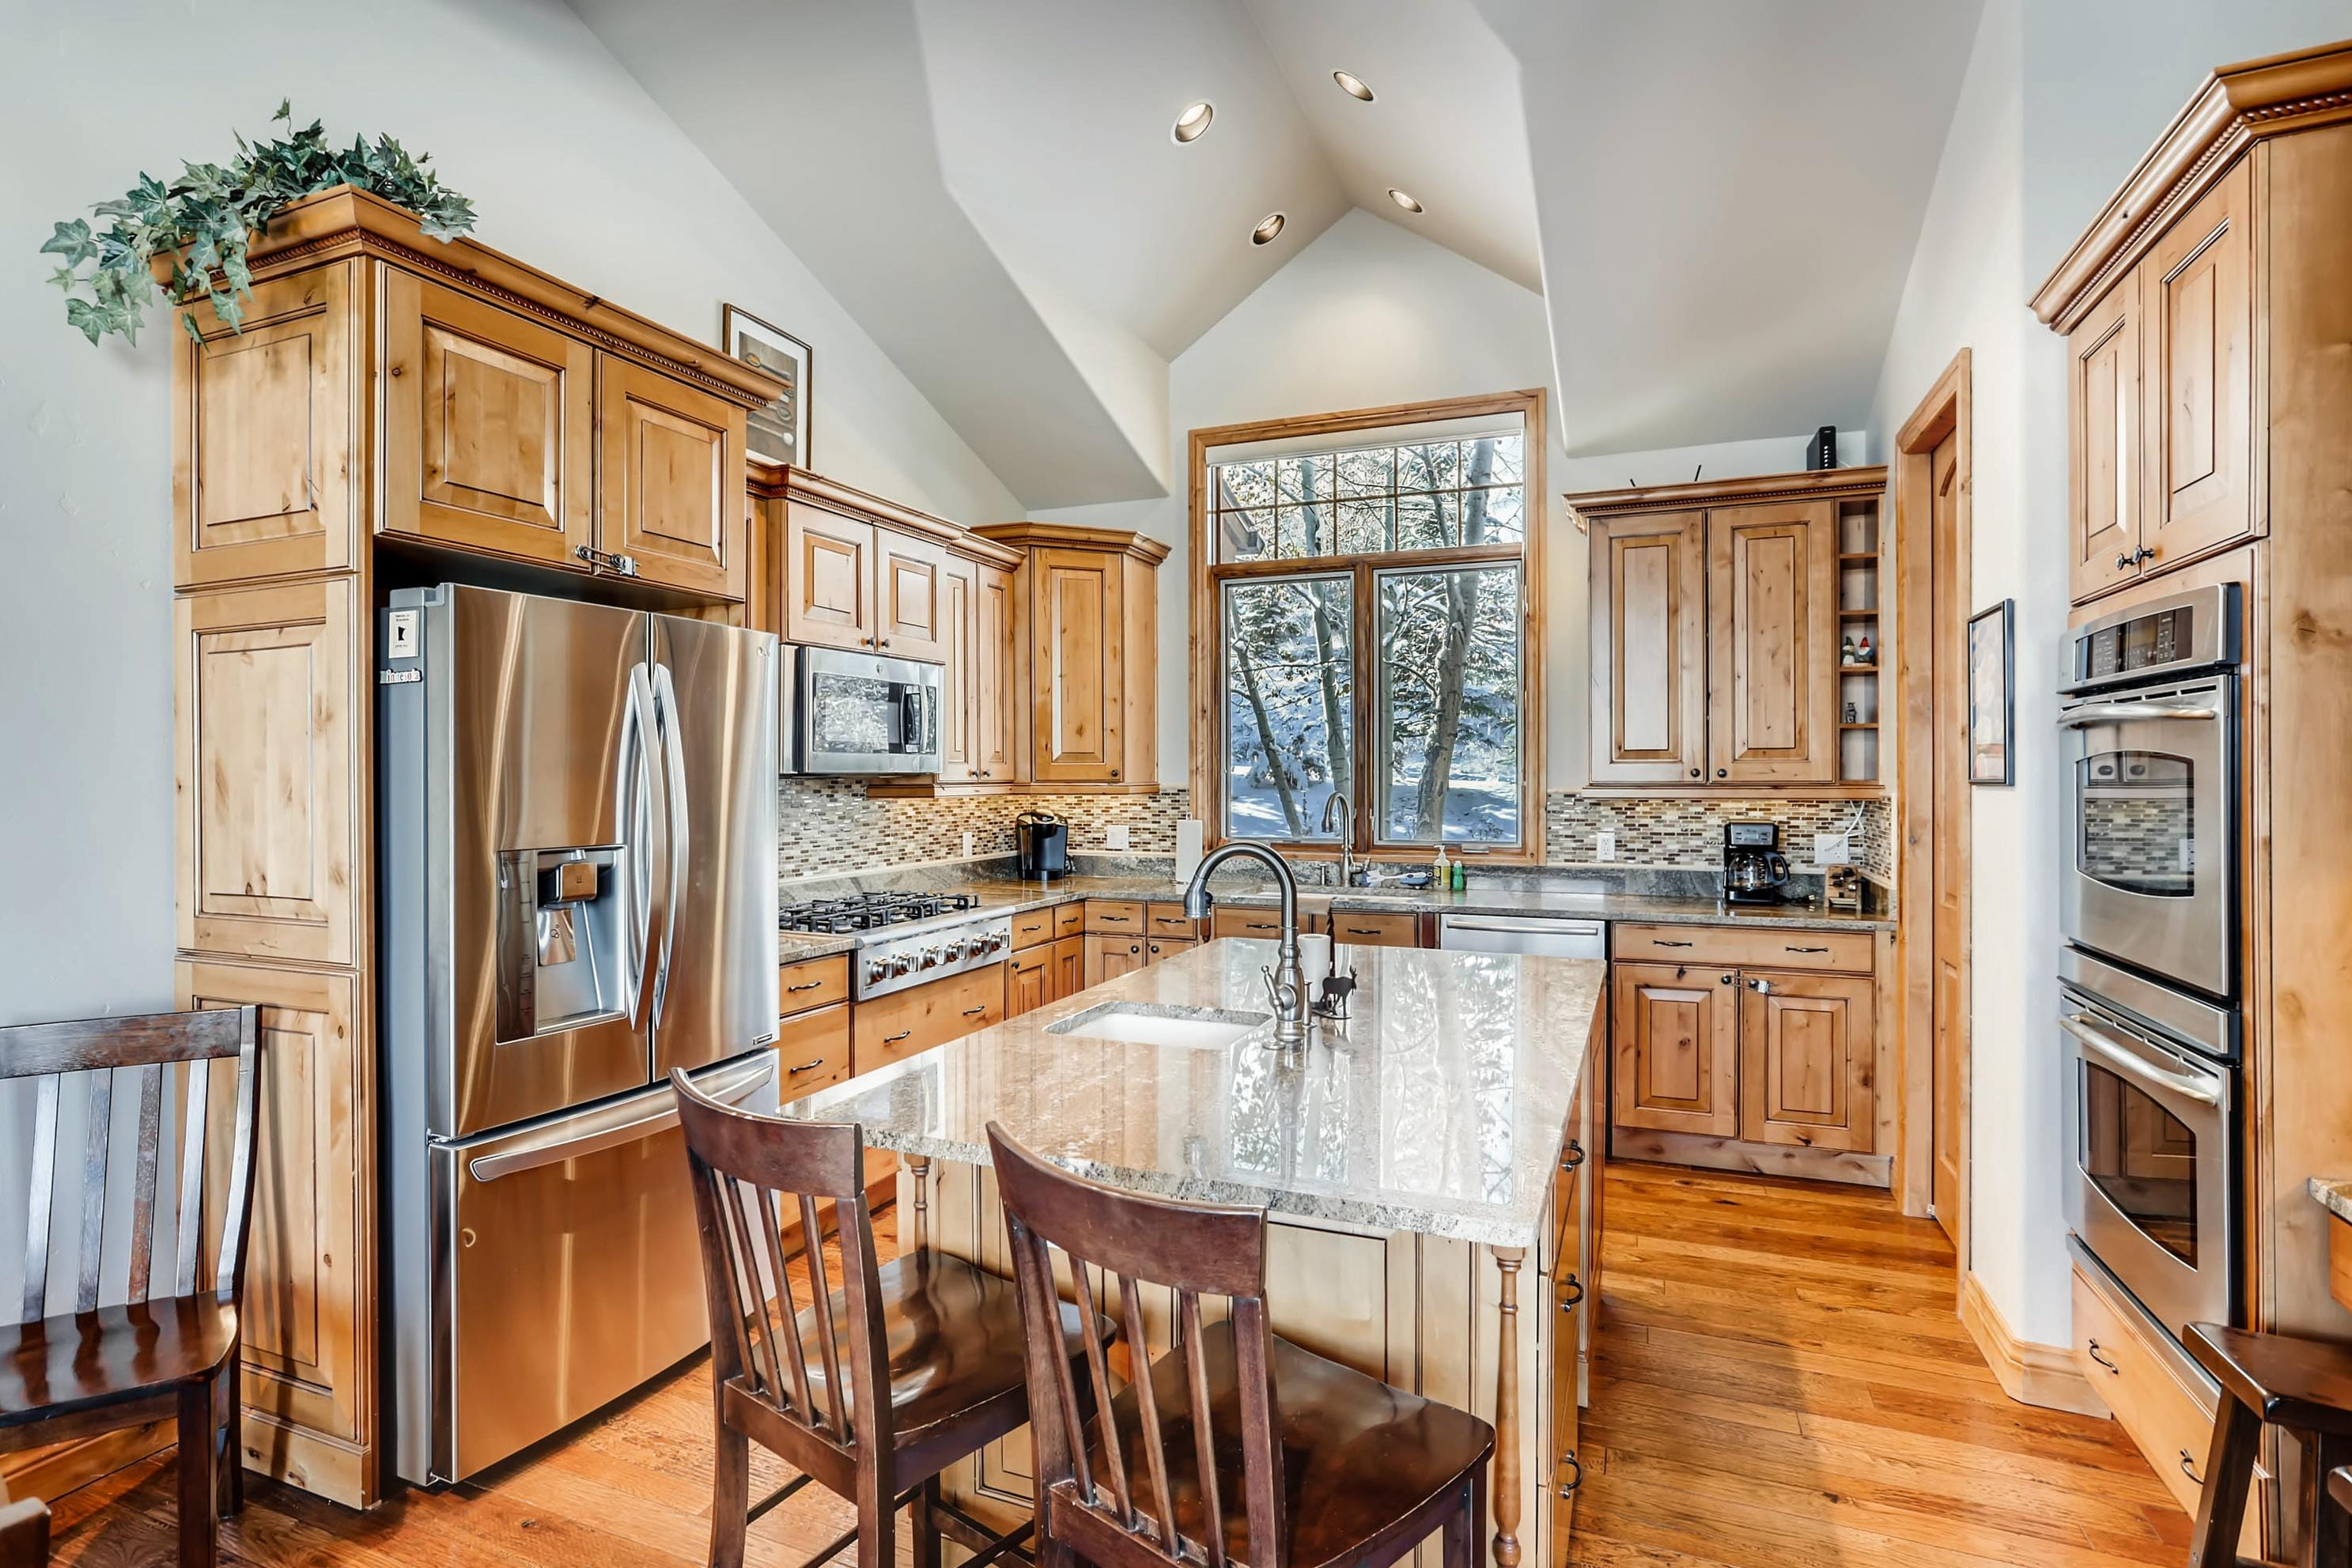 The deluxe gourmet kitchen has a large island with an additional sink and seating for 2.